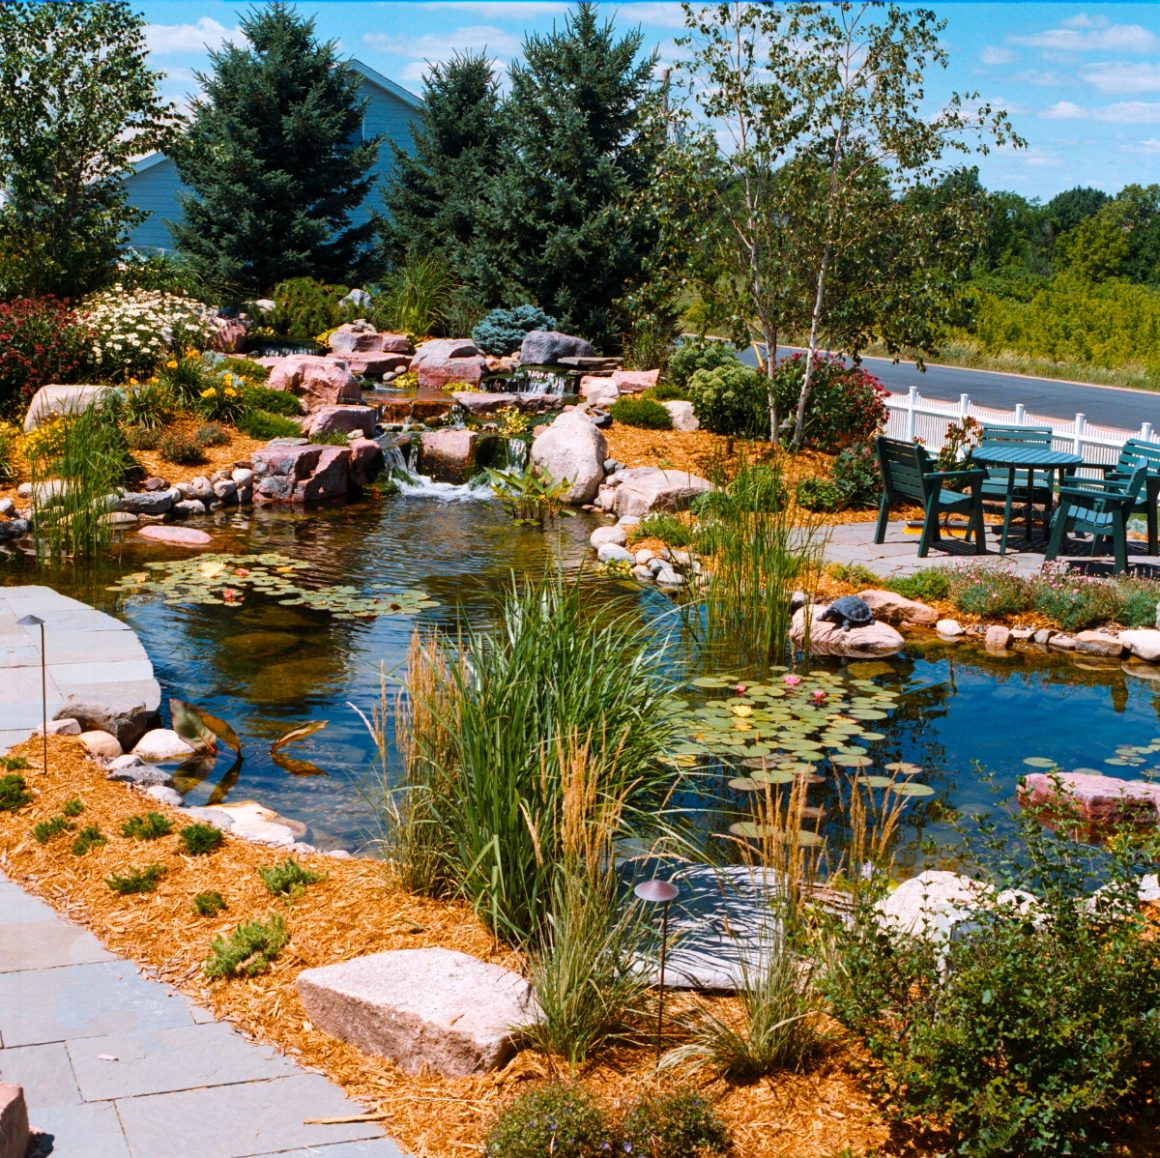 How To Hire the Right Landscape Architect for Your Yard